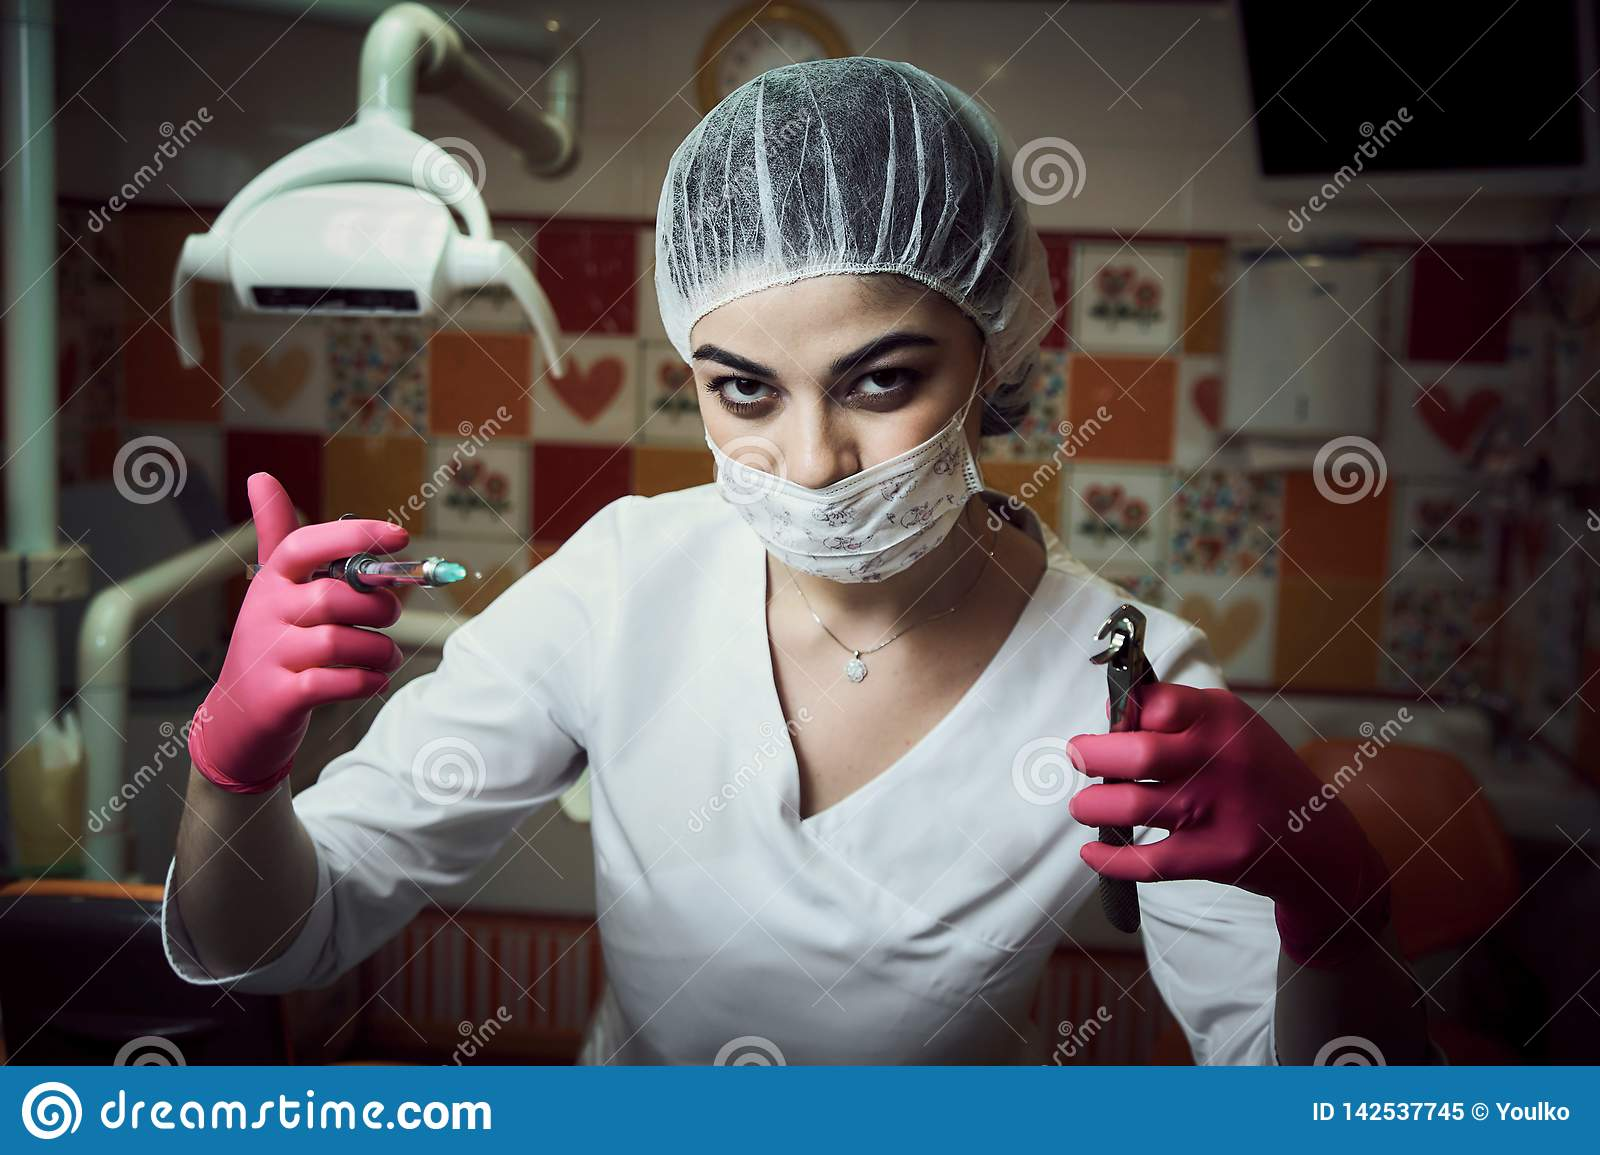 The fear of dental treatment. Children`s dentist girl at the dentist office keeps the instrument and scares